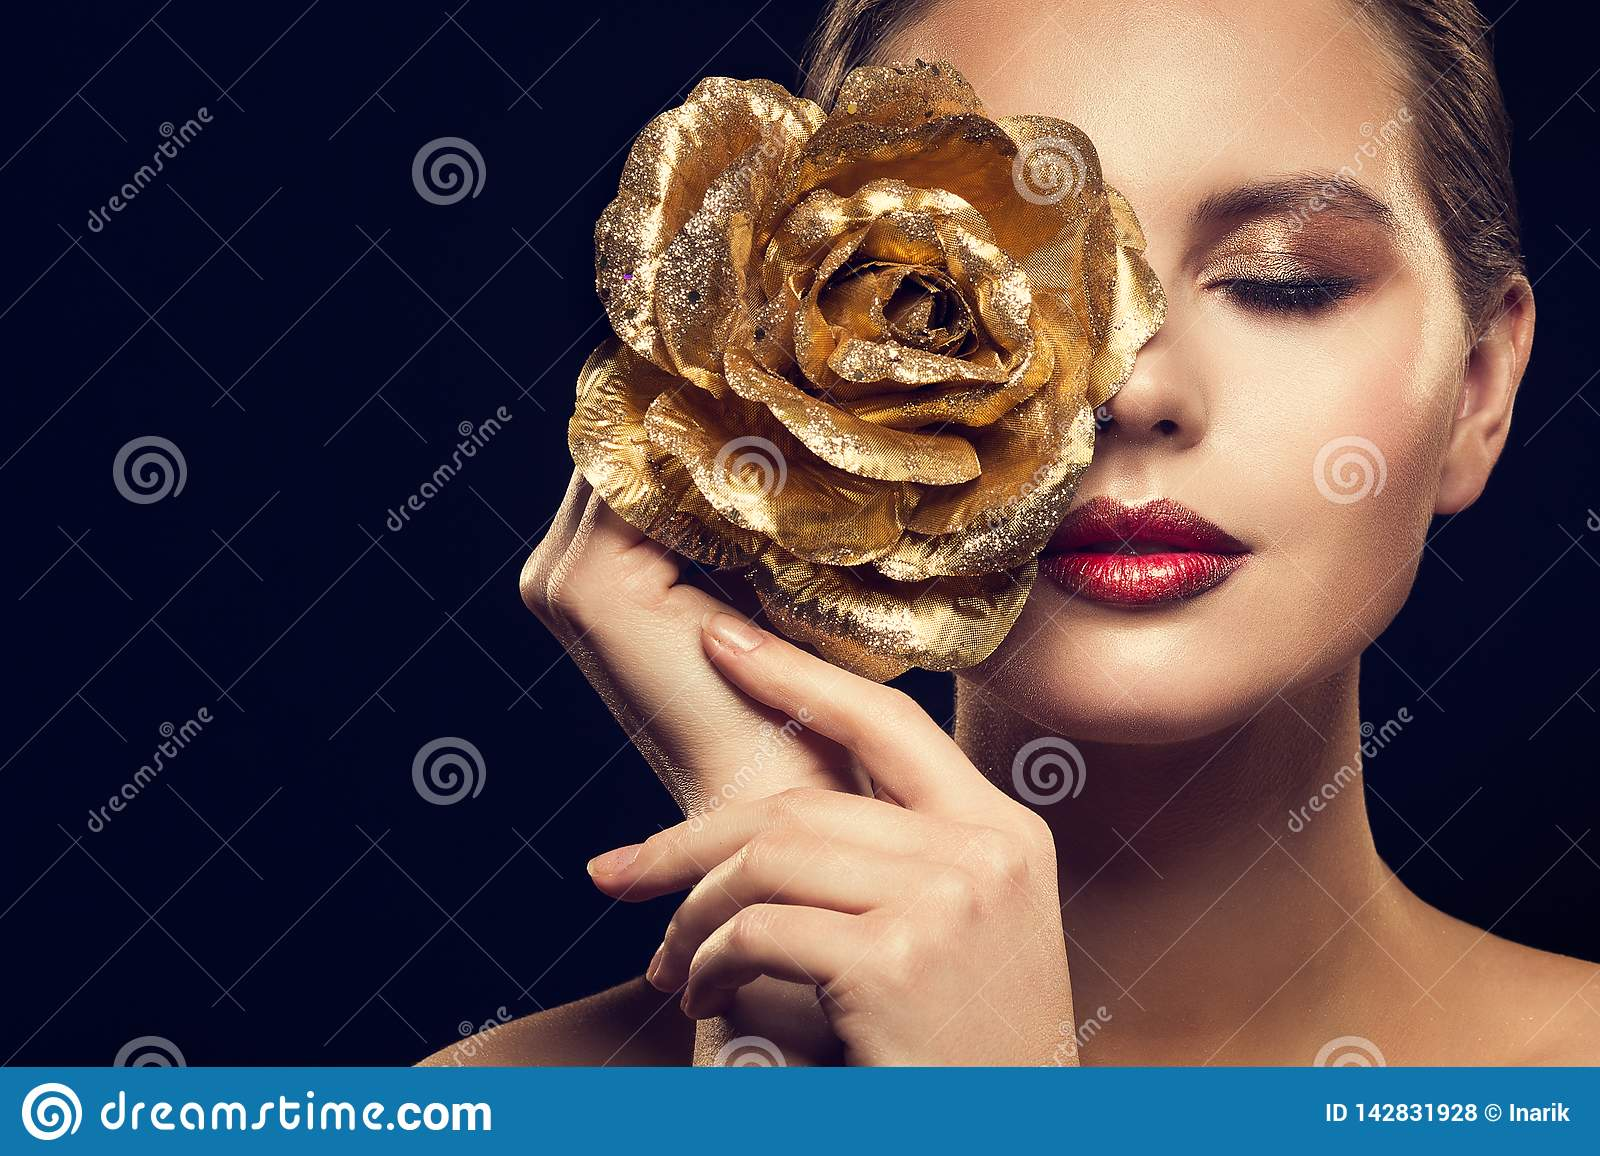 Fashion Model Beauty Portrait with Gold Rose Flower, Golden Woman Luxury Makeup an Rose Jewelry